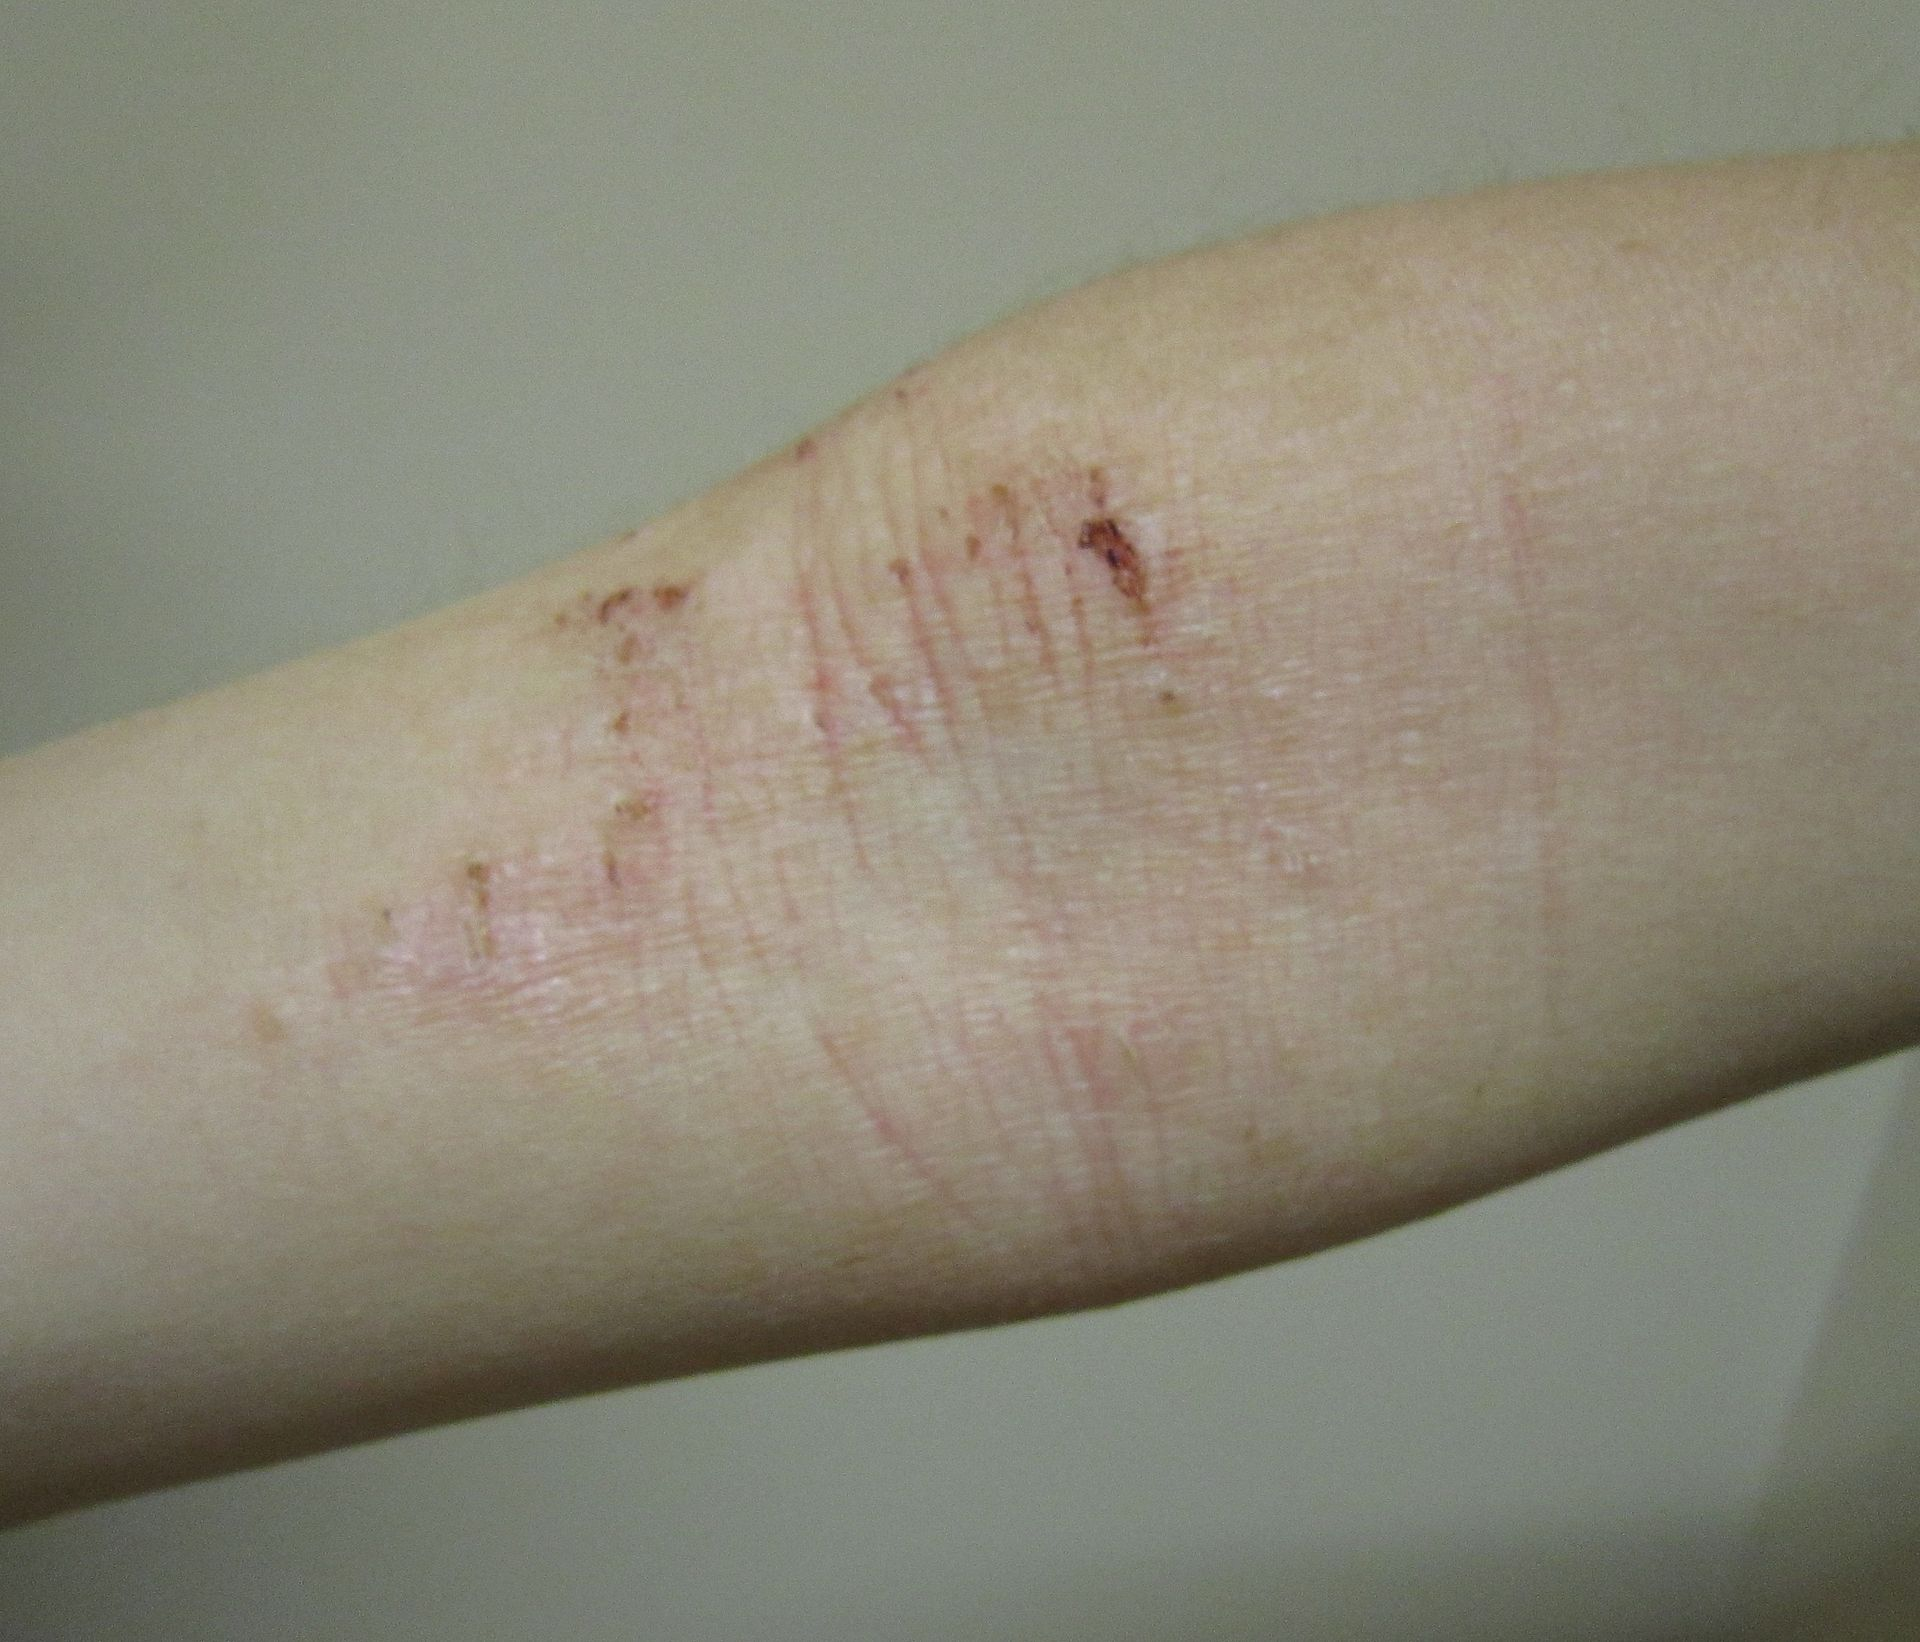 atopic dermatitis develop in adults